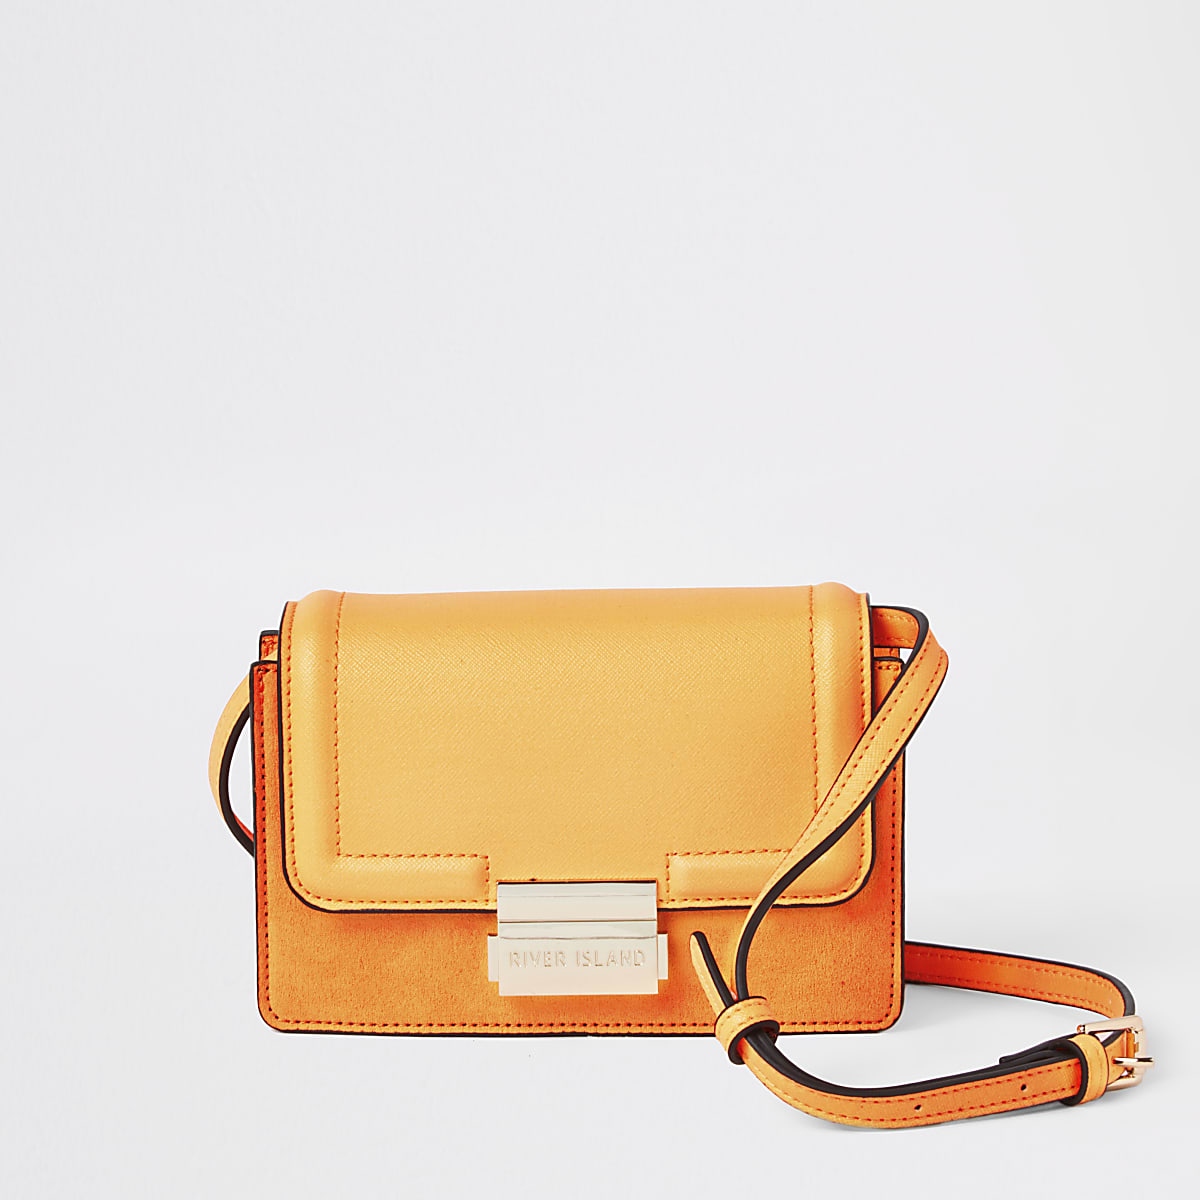 Neon orange mini cross body bag